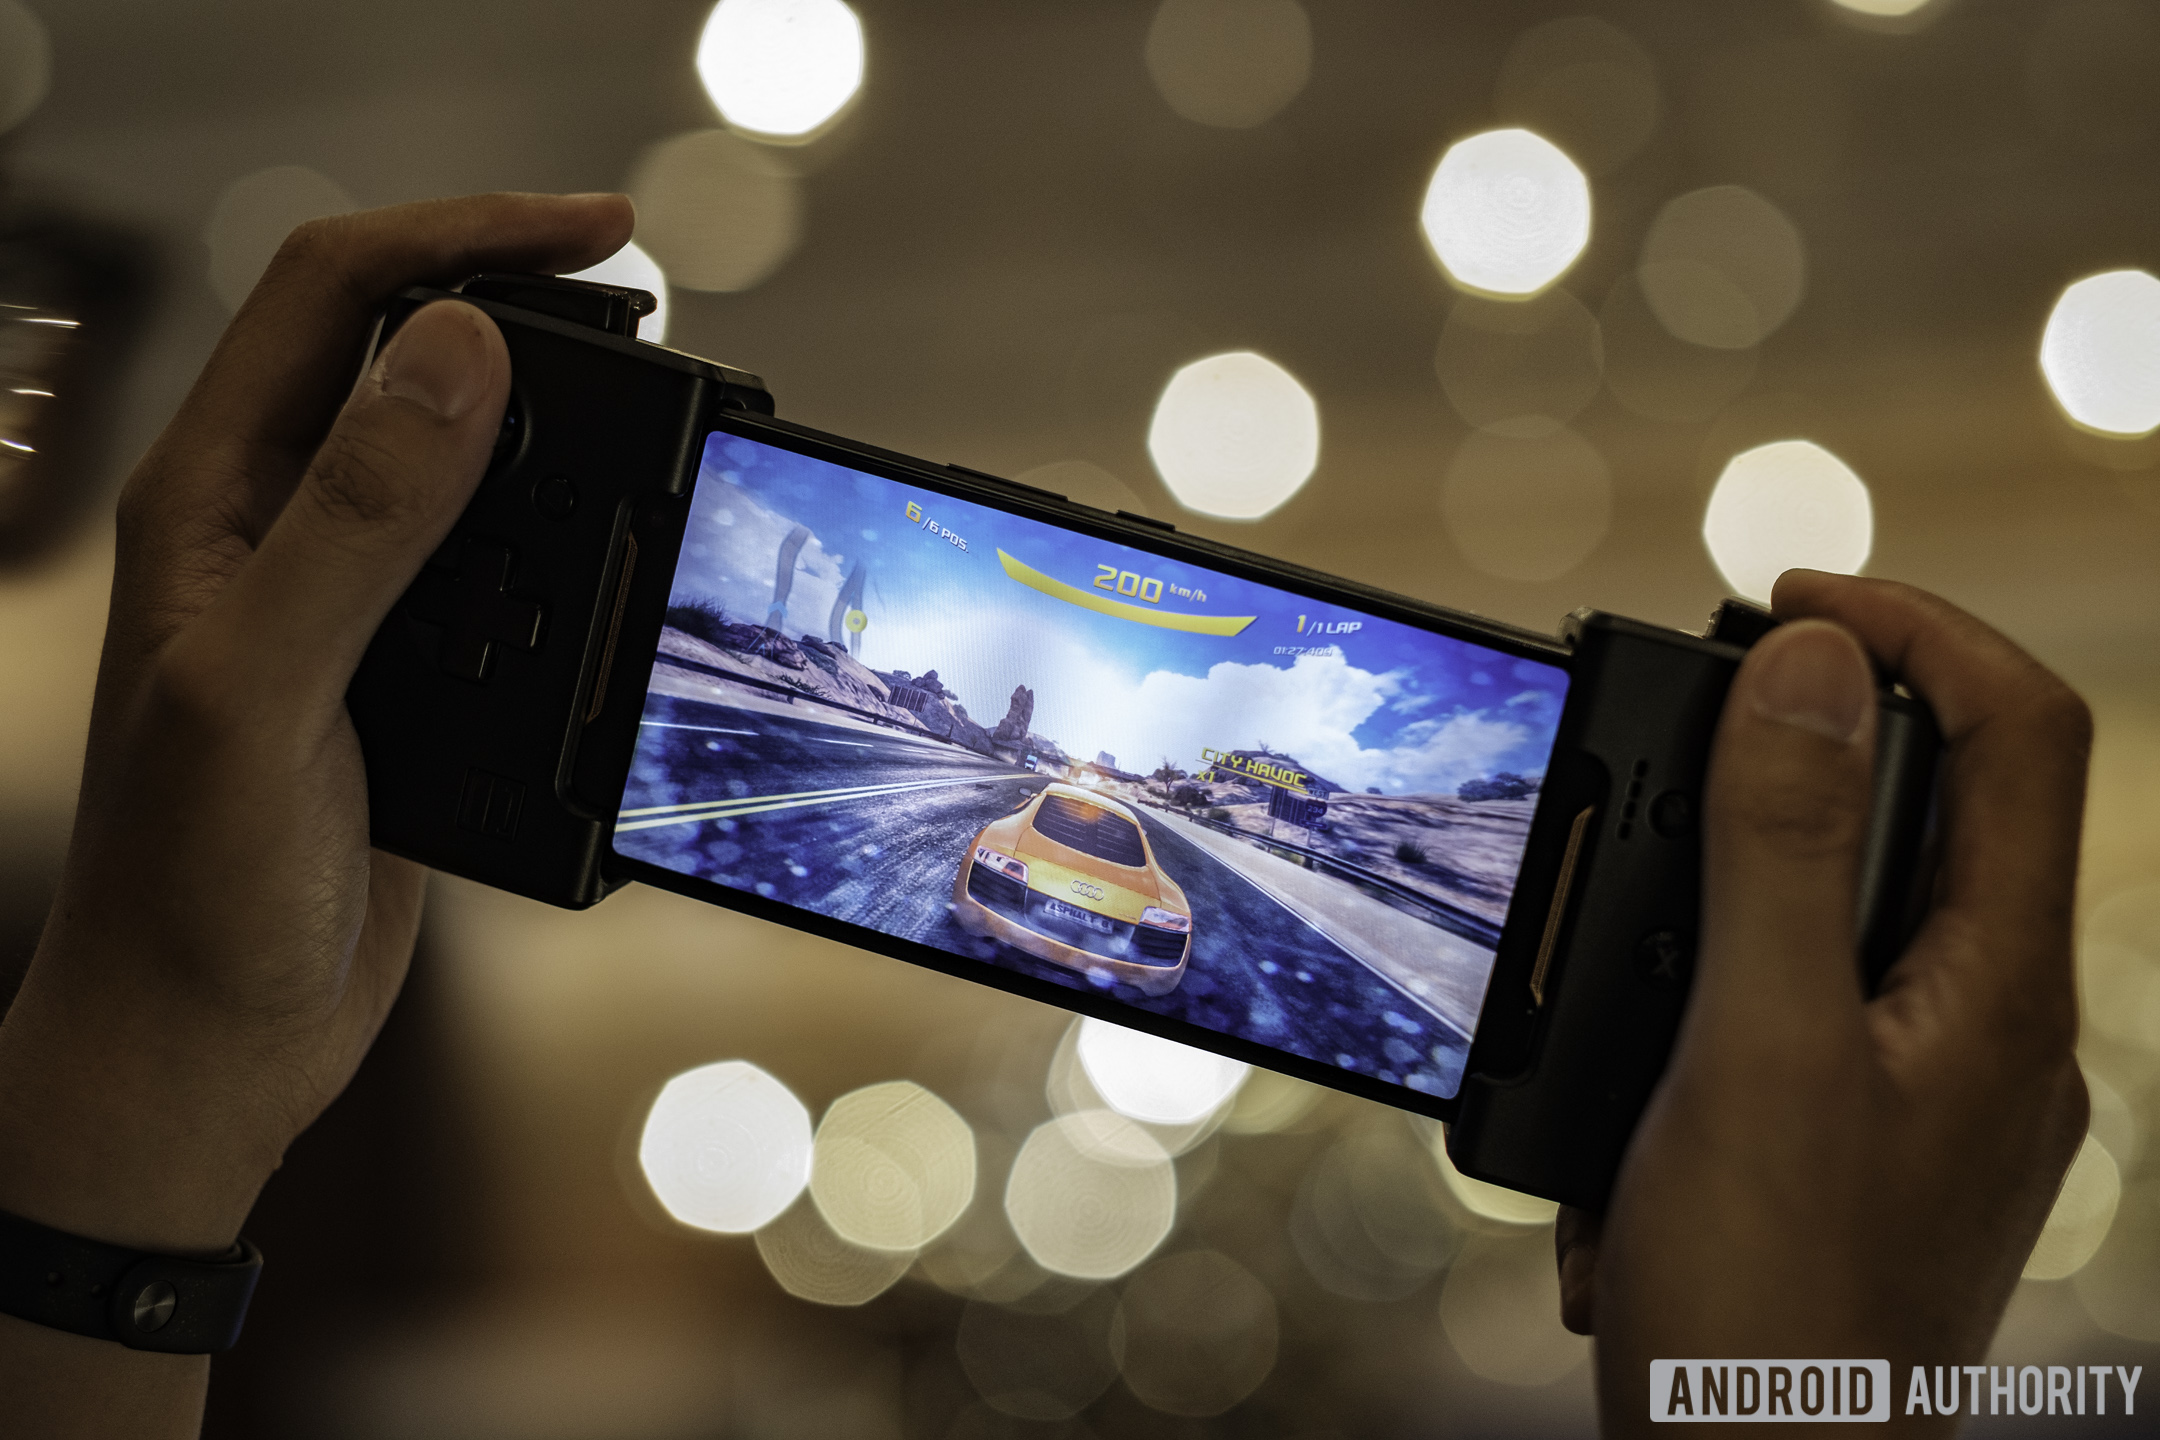 These games support Asus ROG Phone's 90Hz display